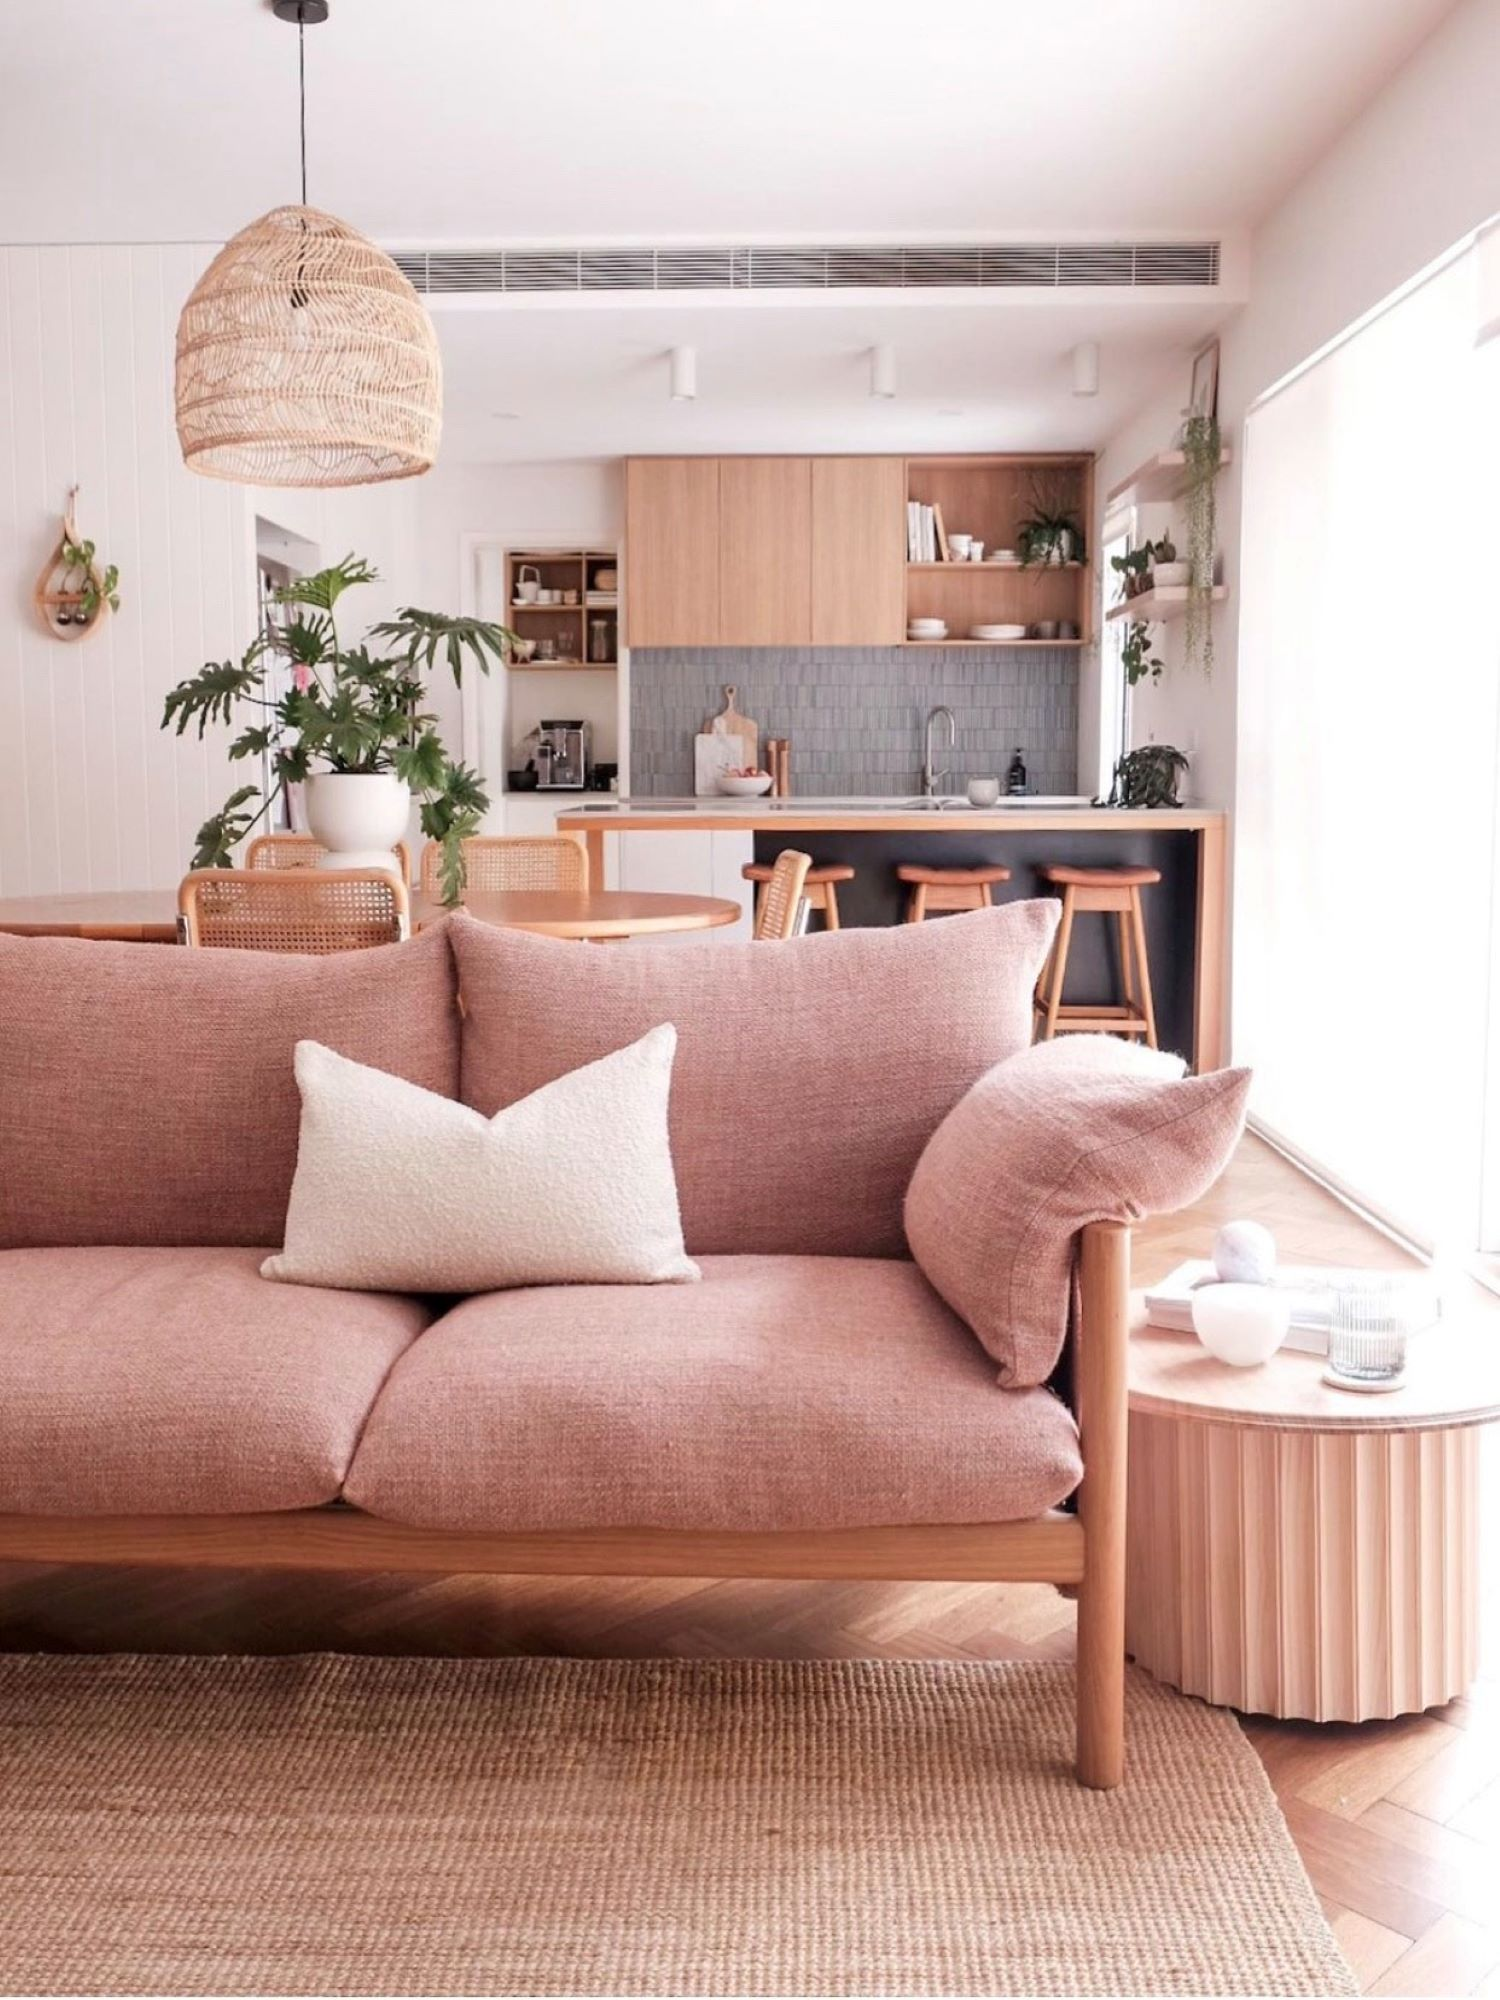 Interior designer Bettina Brent living room with blush couch